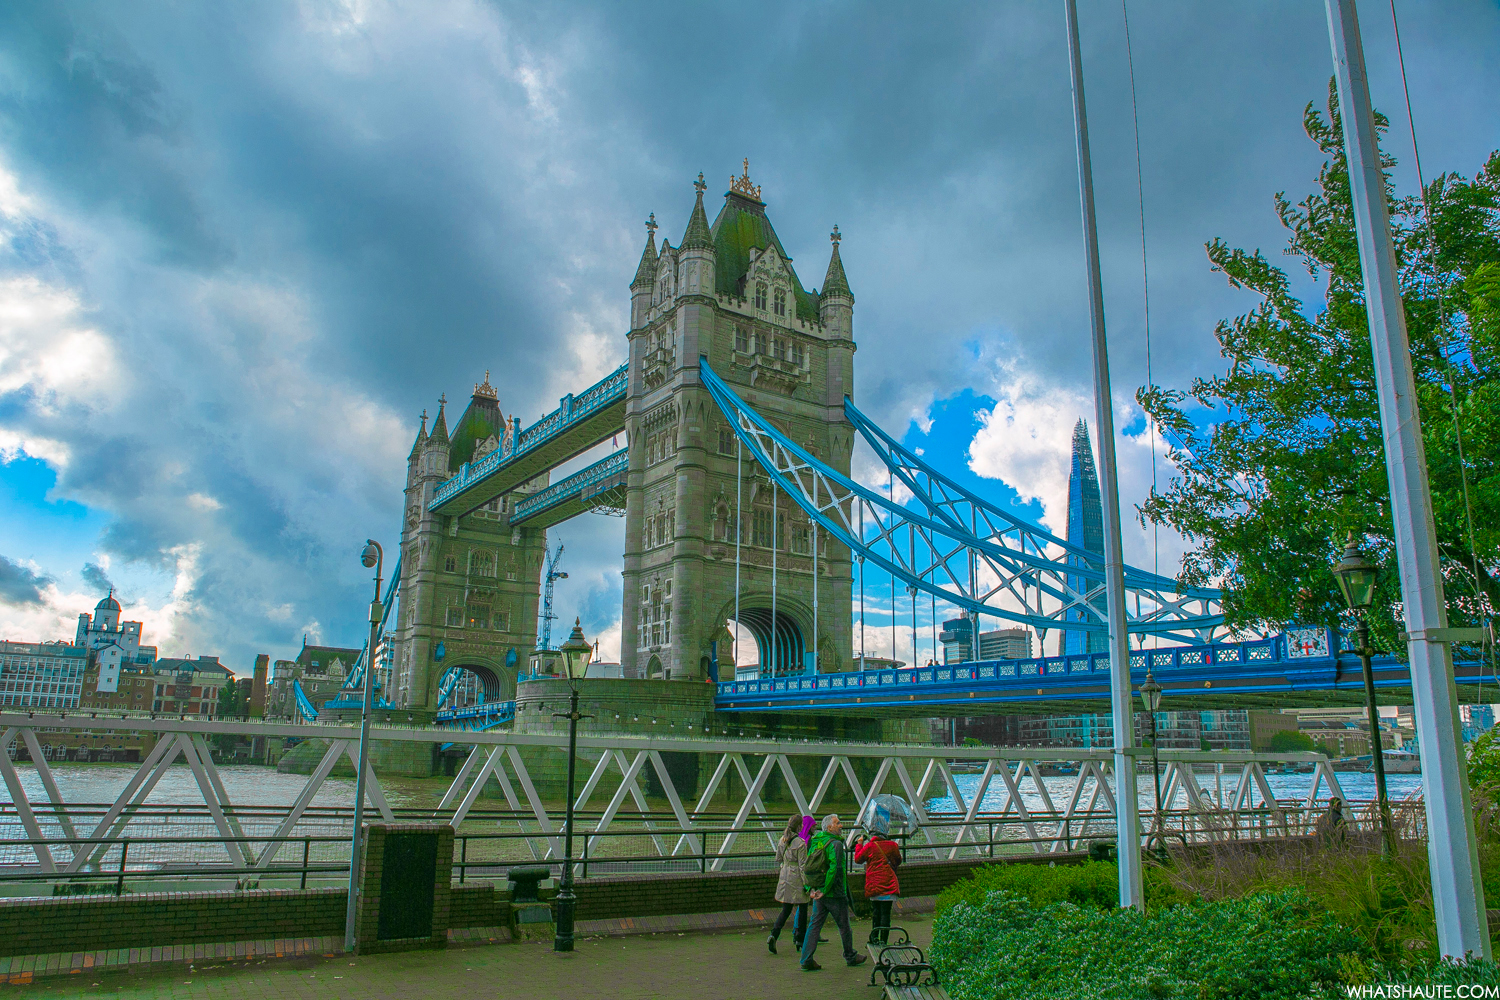 Tower Bridge & St. Katharine's Pier - London, England, What's Haute in the World